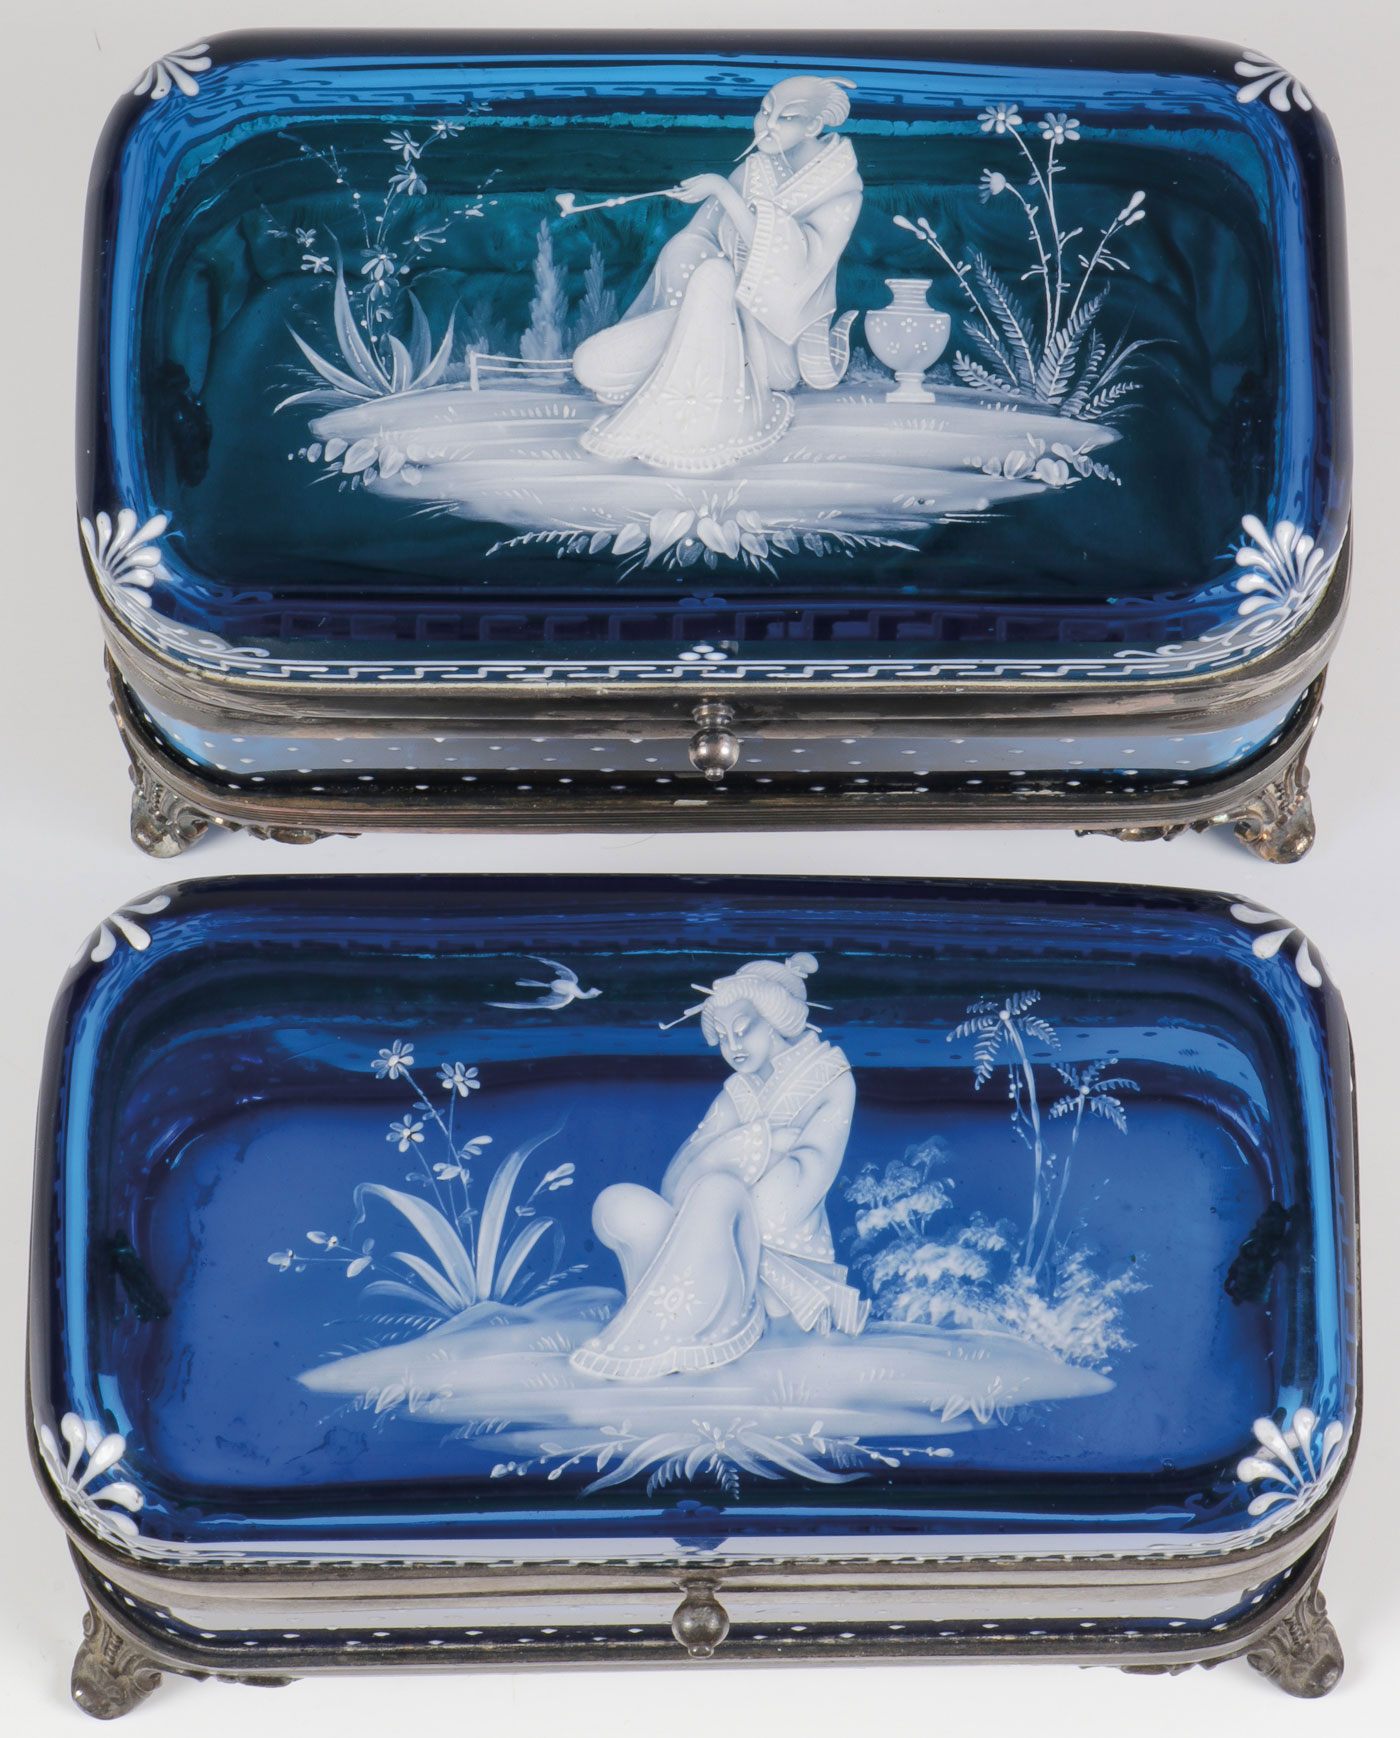 Lot 31 - TWO MARY GREGORY BOXES, C. 1890